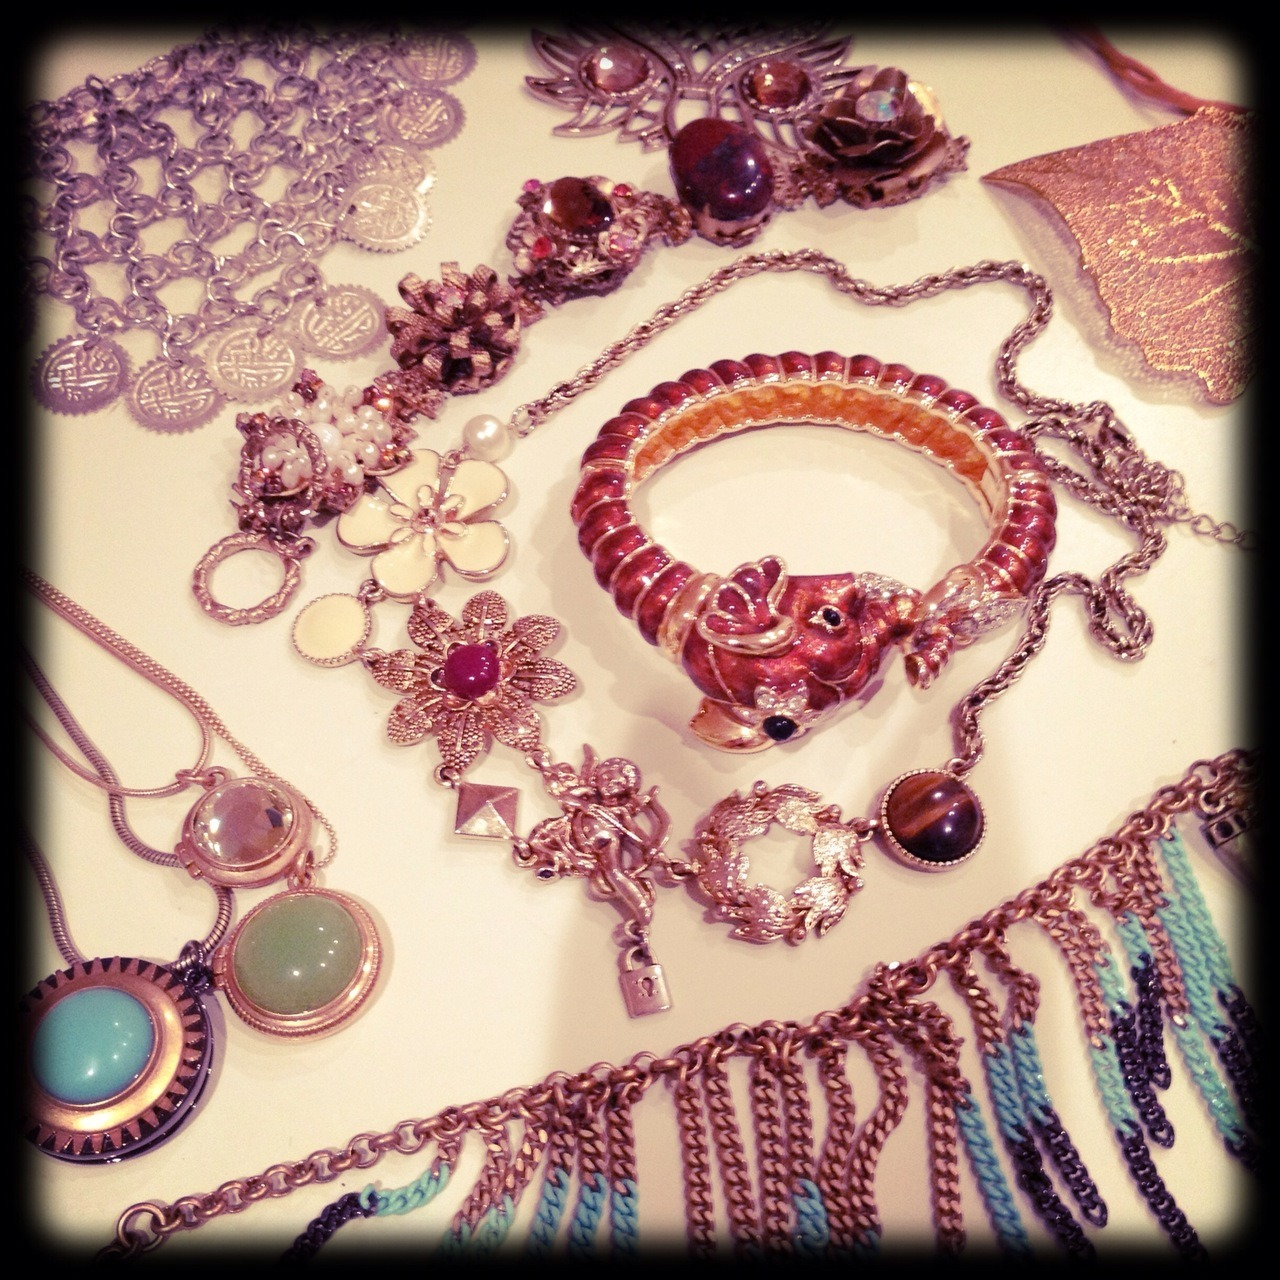 "Last night I decided to reorganize my jewelry.  I have tons of it, but rarely wear it because it is all stored in tiny boxes, which in turn are stored in baskets or larger boxes, so it's all hidden from view, and I end up forgetting about it and using the same four things over and over again. During my latest sleepless night, I had an epiphany and figured out a way to make my jewelry more accessible. During this process, I ended up finding pieces I didn't even know I had! It's almost like shopping in your own closet! (I know people say that, and it's true!) Some pieces I ended up having to throw away because they tarnished with time, some others are really old but I think I can find a way to make them work. Some others are just perfect and I can't wait to find the perfect outfit for them.  For now, I need to keep things in boxes, although I put them someplace that is far more reachable during my crazy ""I-cant-figure-out-what-to-wear"" mornings. One day, I will have a closet so big that all my jewelry will be nicely organized and clearly displayed. Here's hoping!"